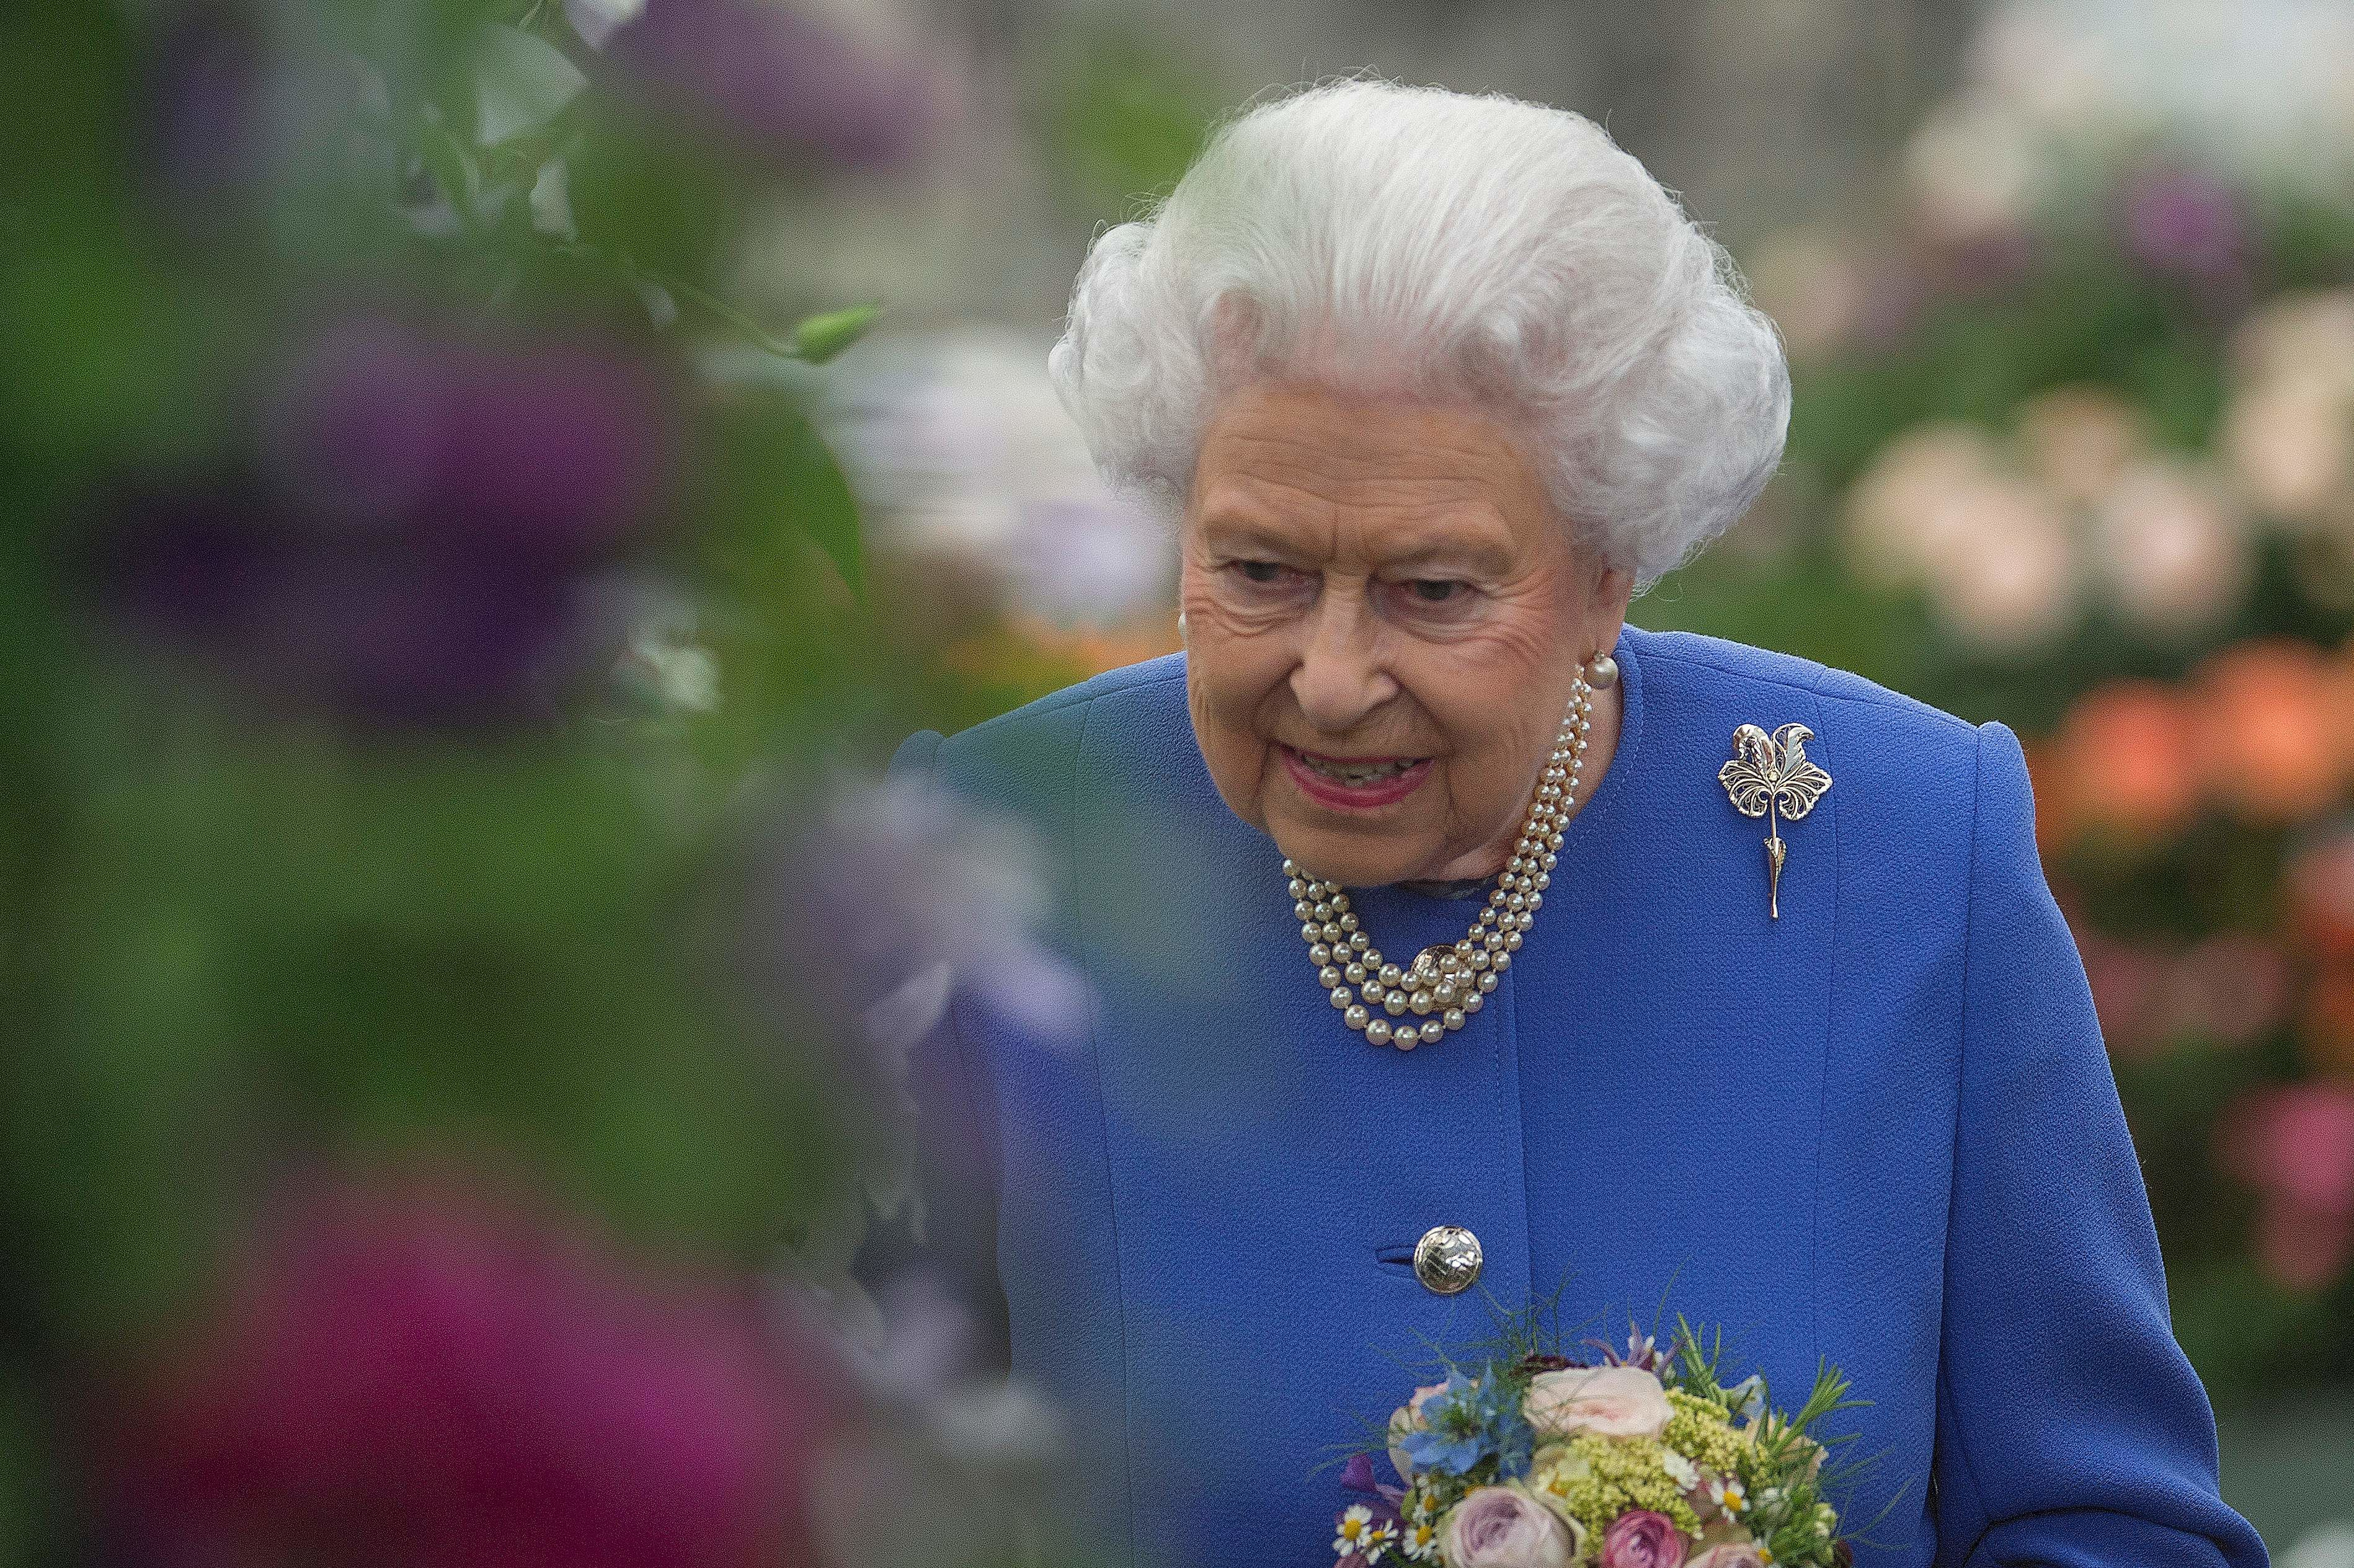 At the Age of 91, The Queen Has Picked up One of Our Favorite Hobbies